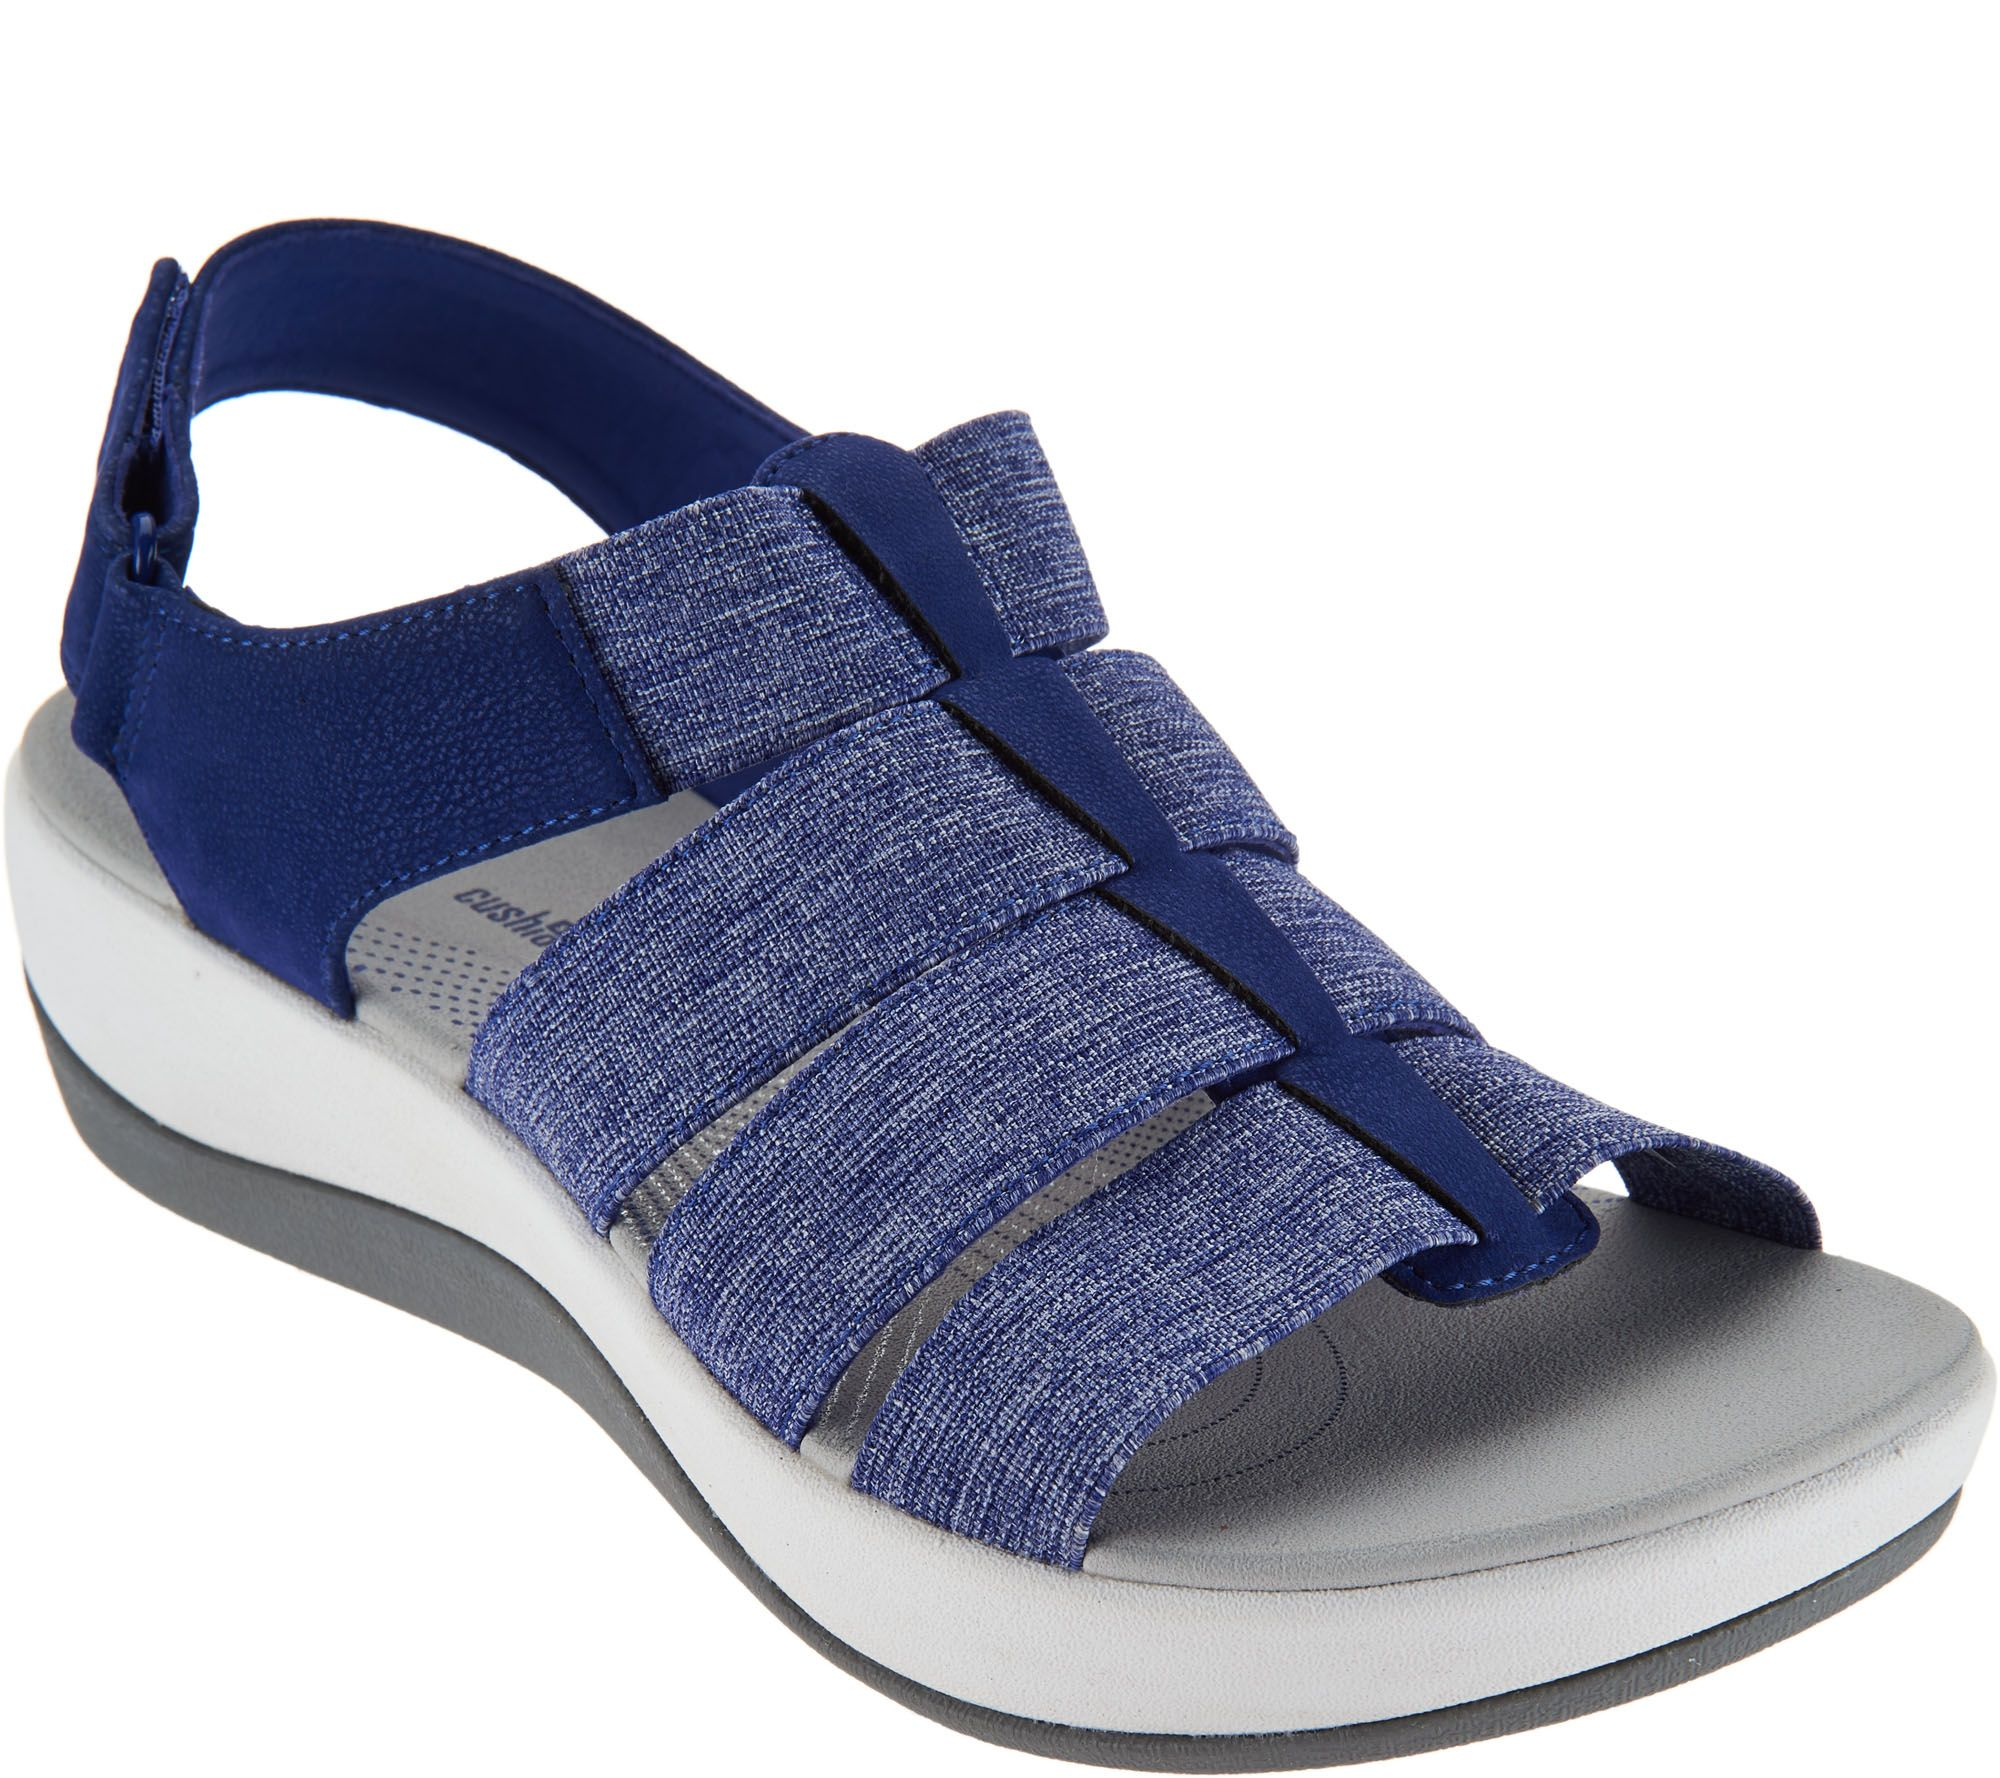 Black sandals clarks